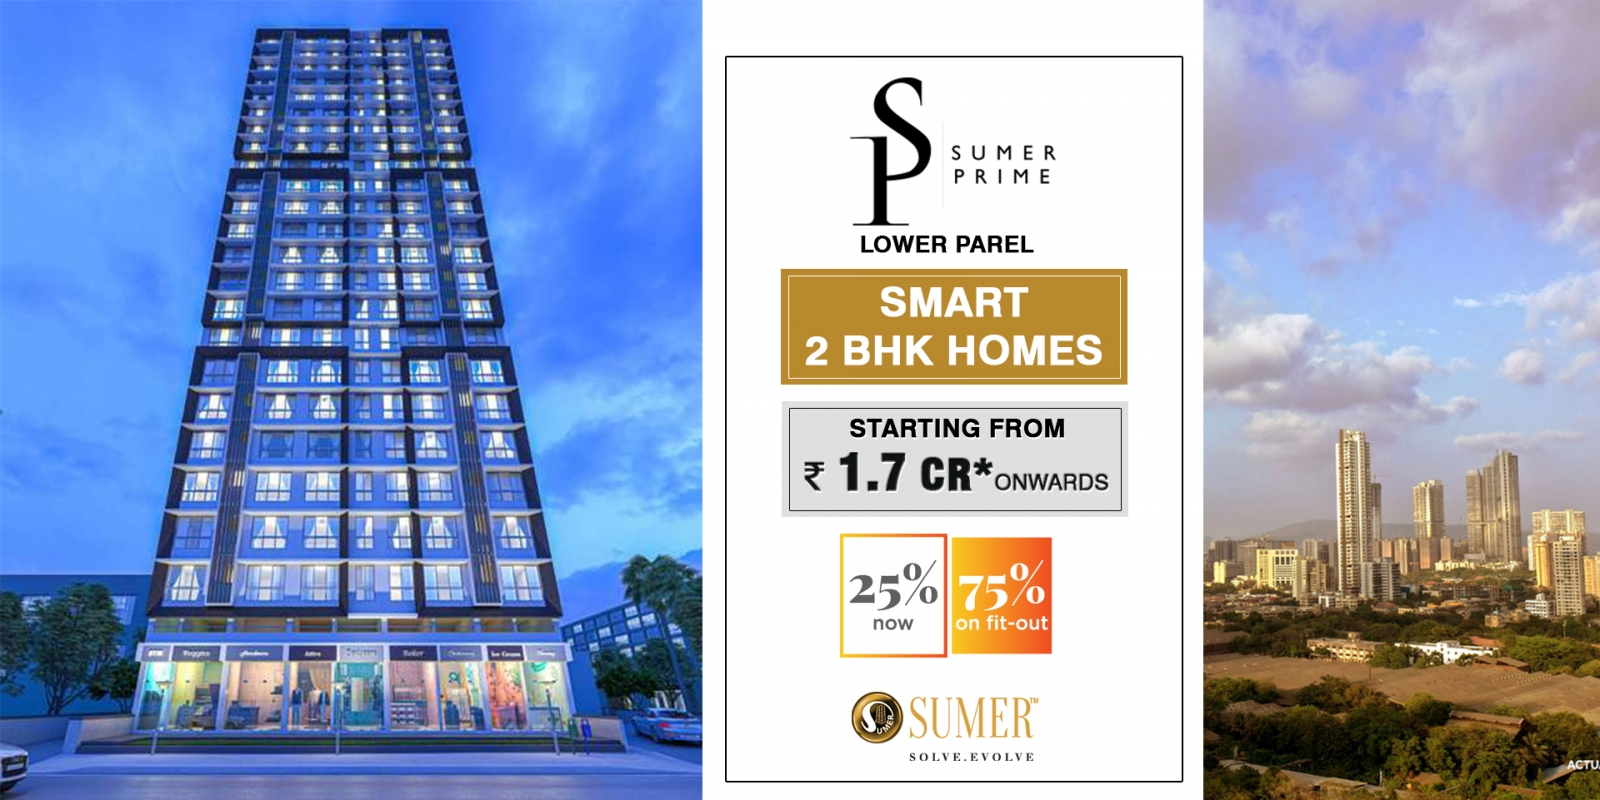 Sumer Prime Lower Parel